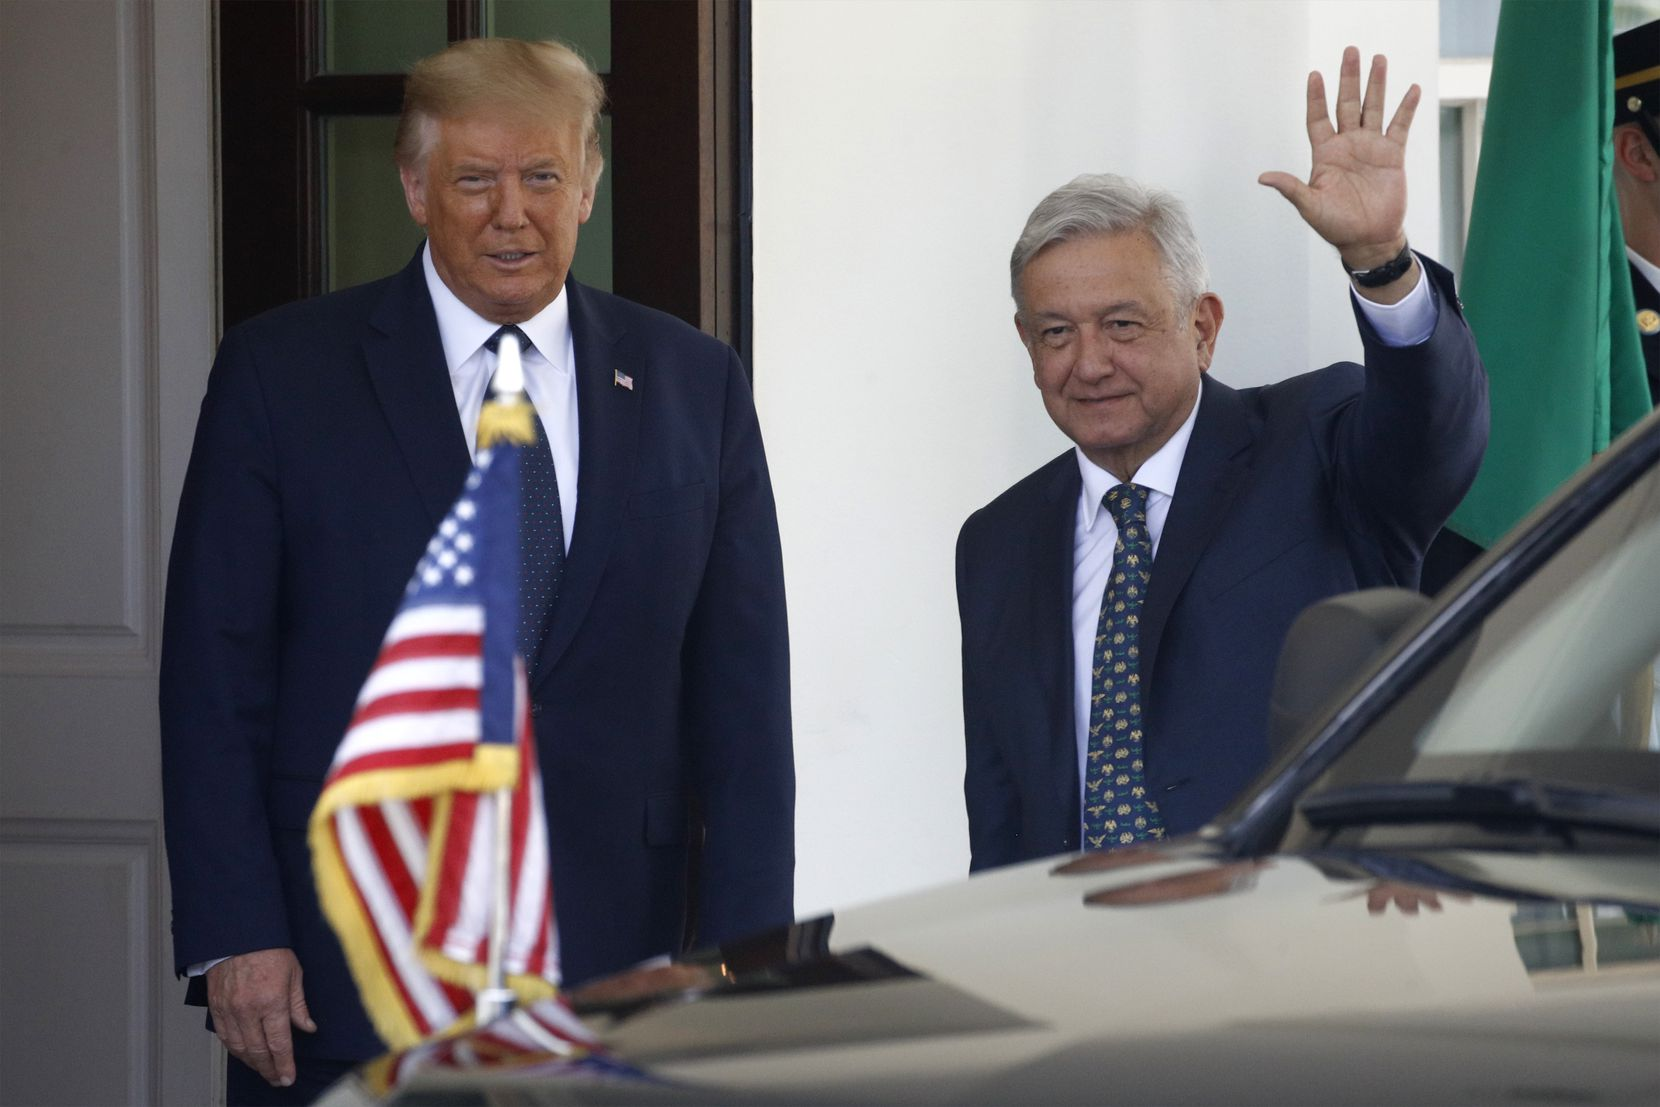 President Donald Trump greeted Mexican President Andres Manuel Lopez Obrador at the White House on July 8, 2020.